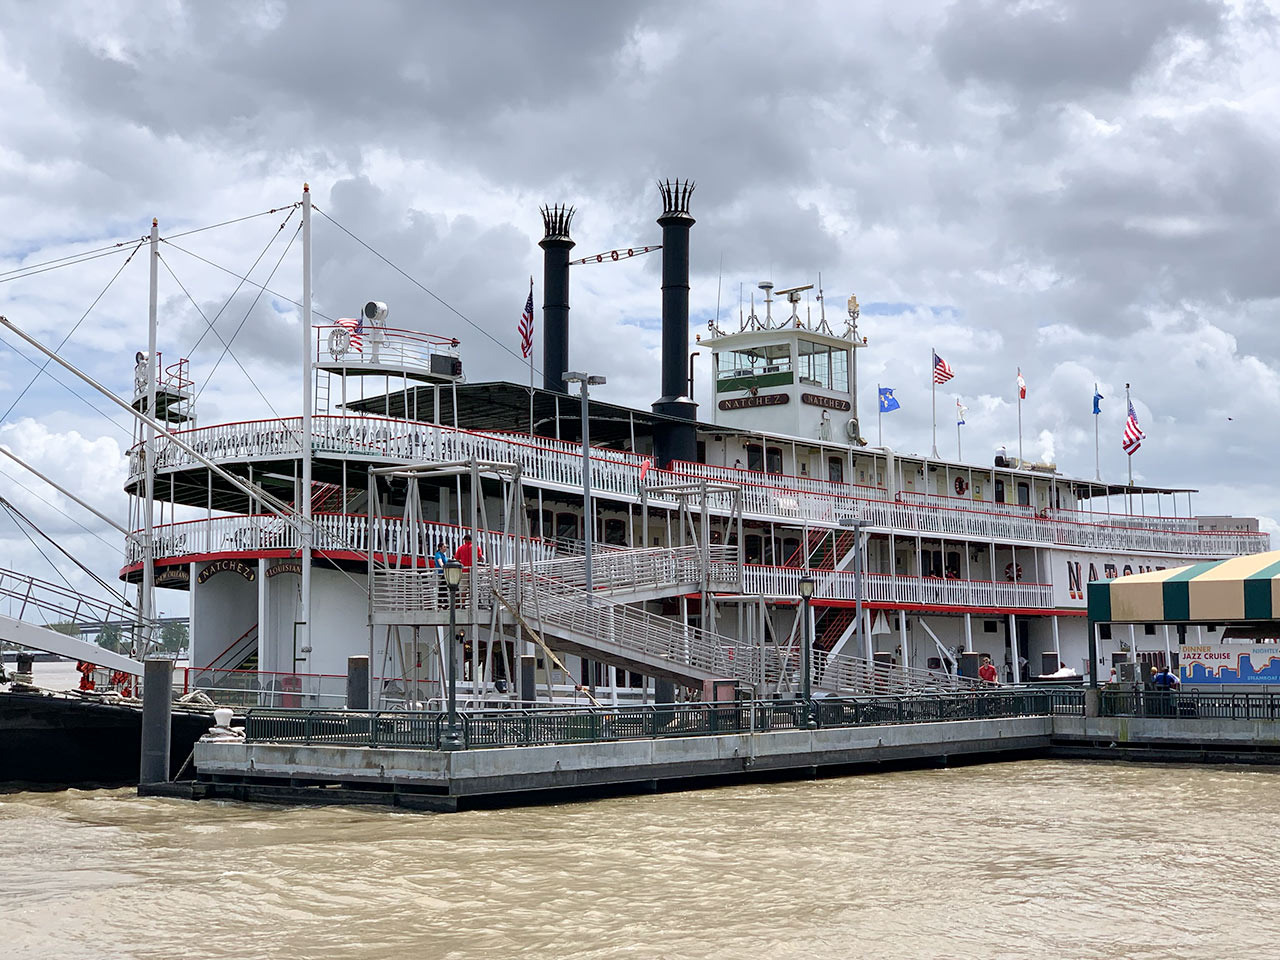 sideview of the steamboat natchez